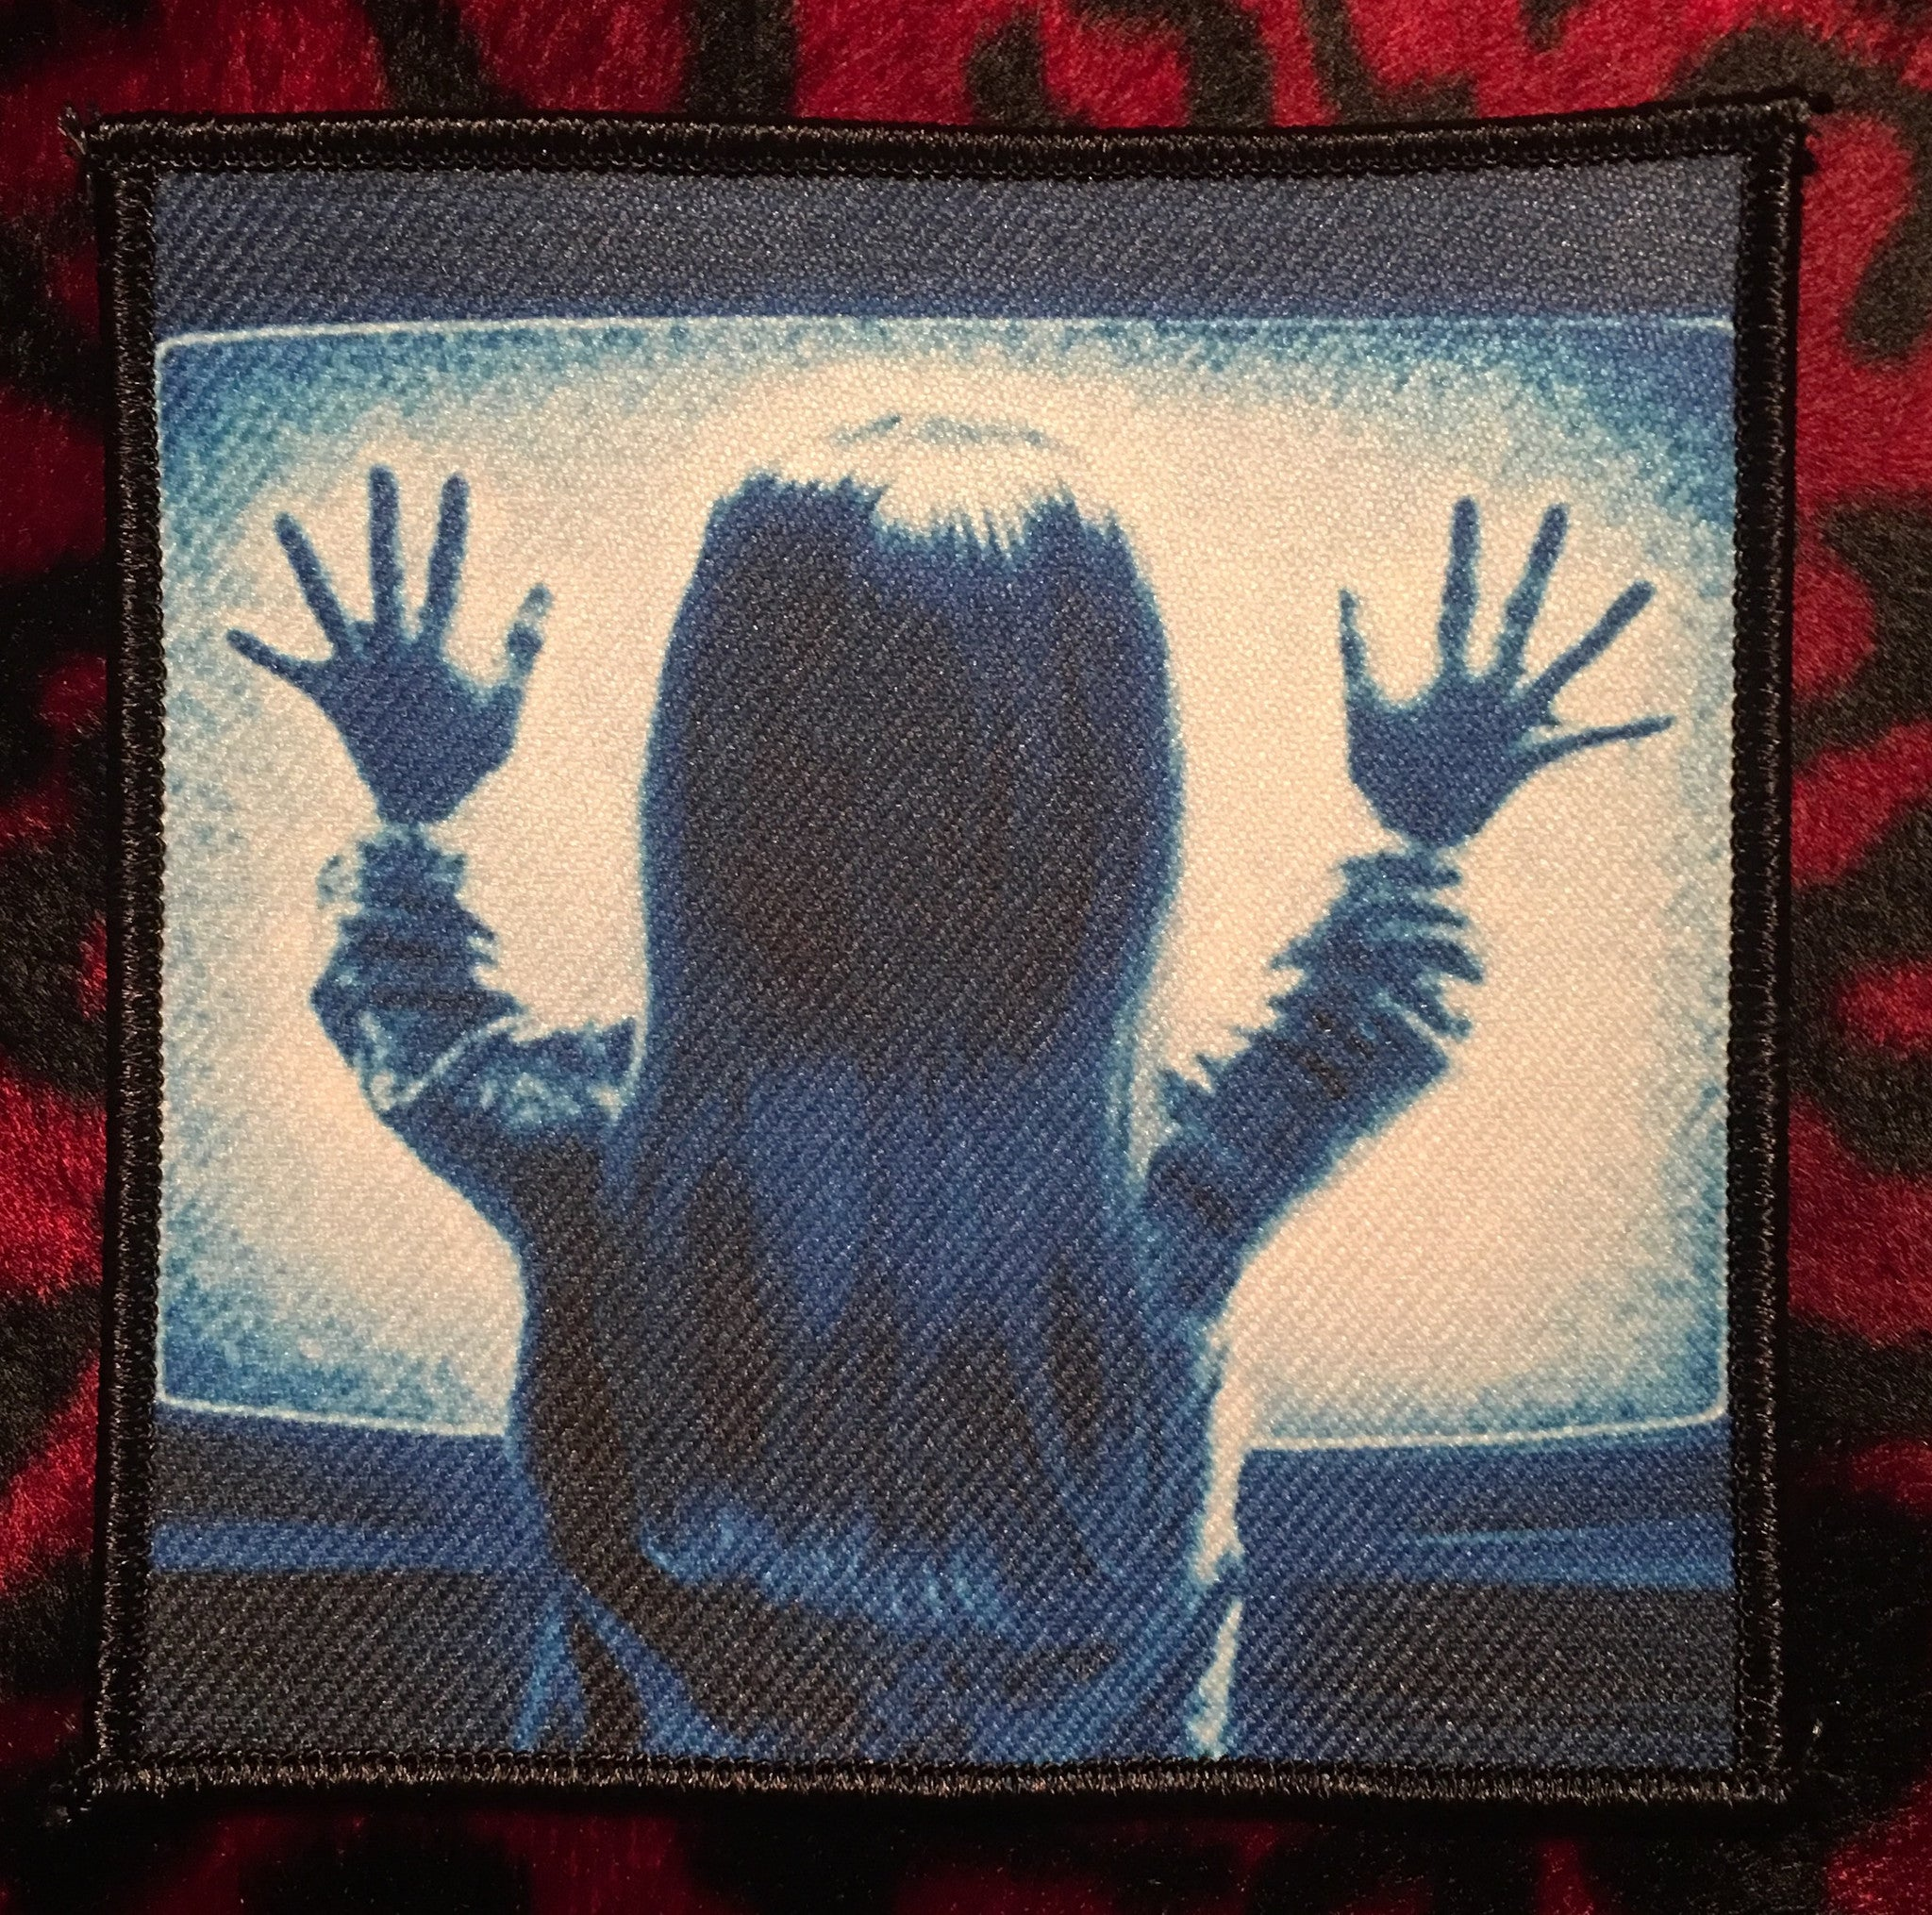 Poltergeist Patch